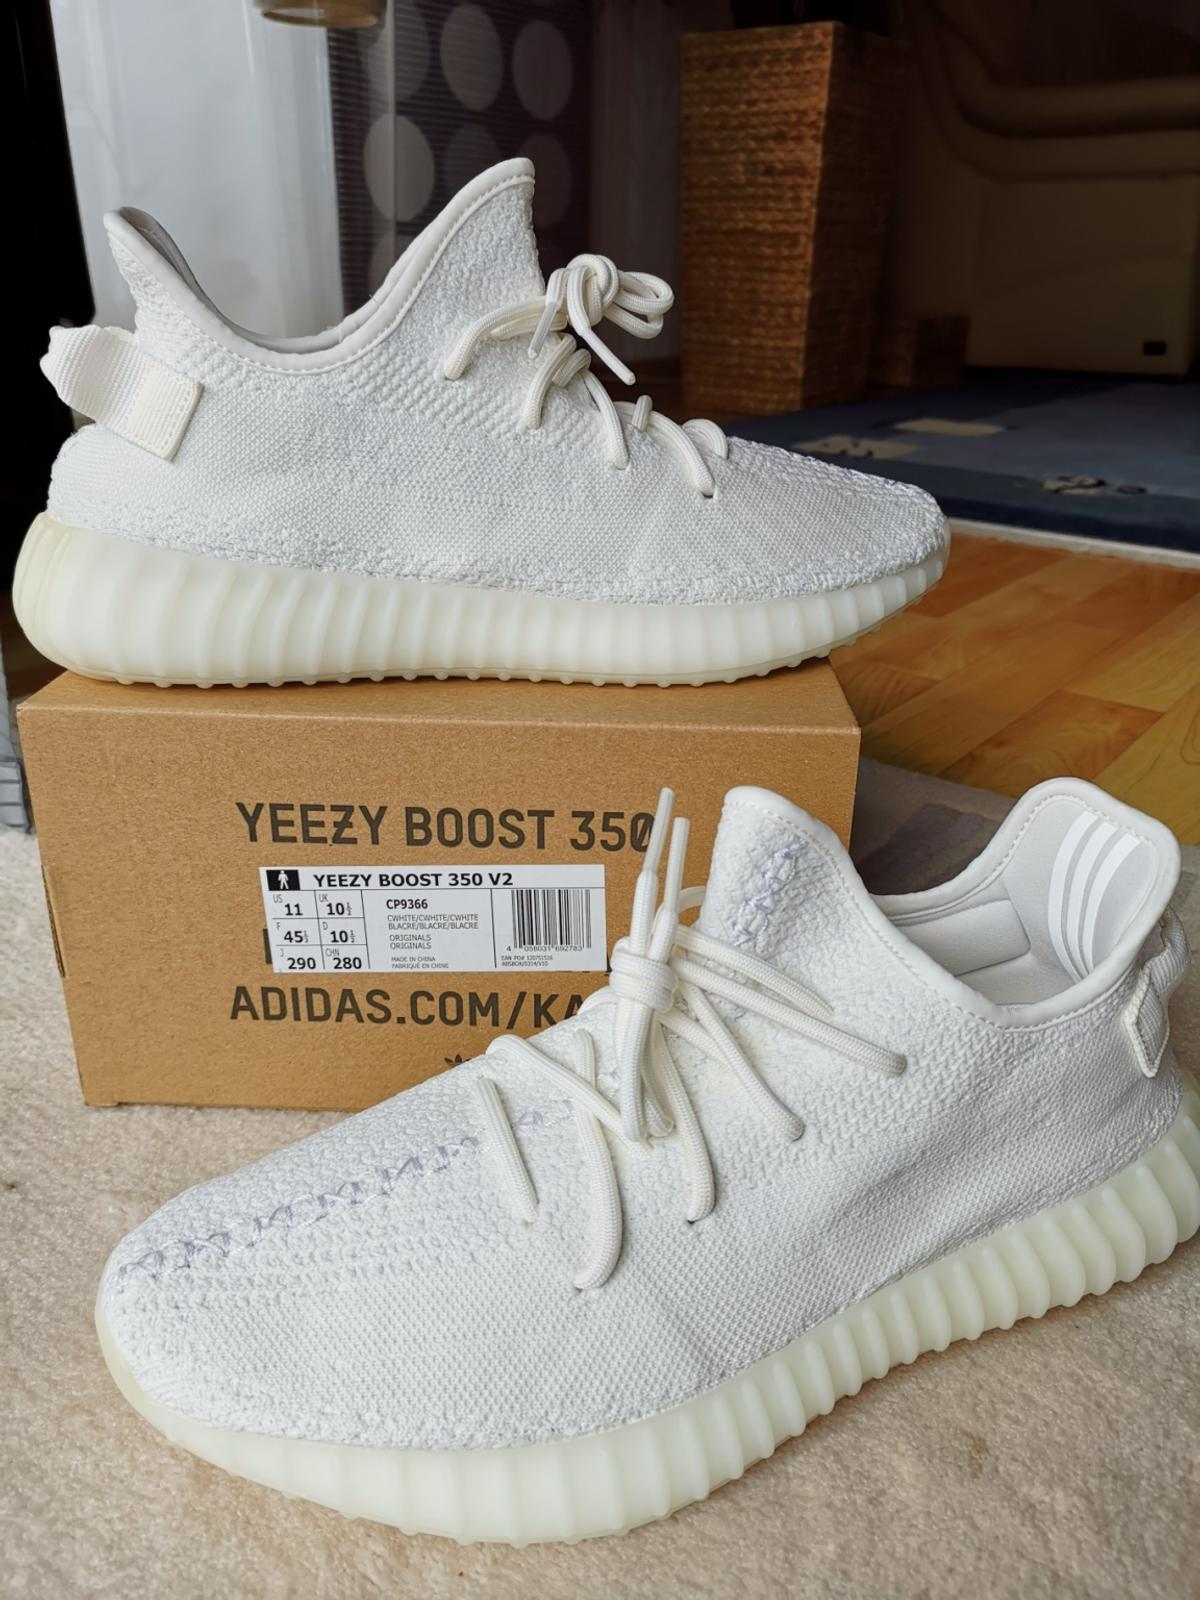 Adidas Yeezy Boost 350 V2 Triple White Weiss